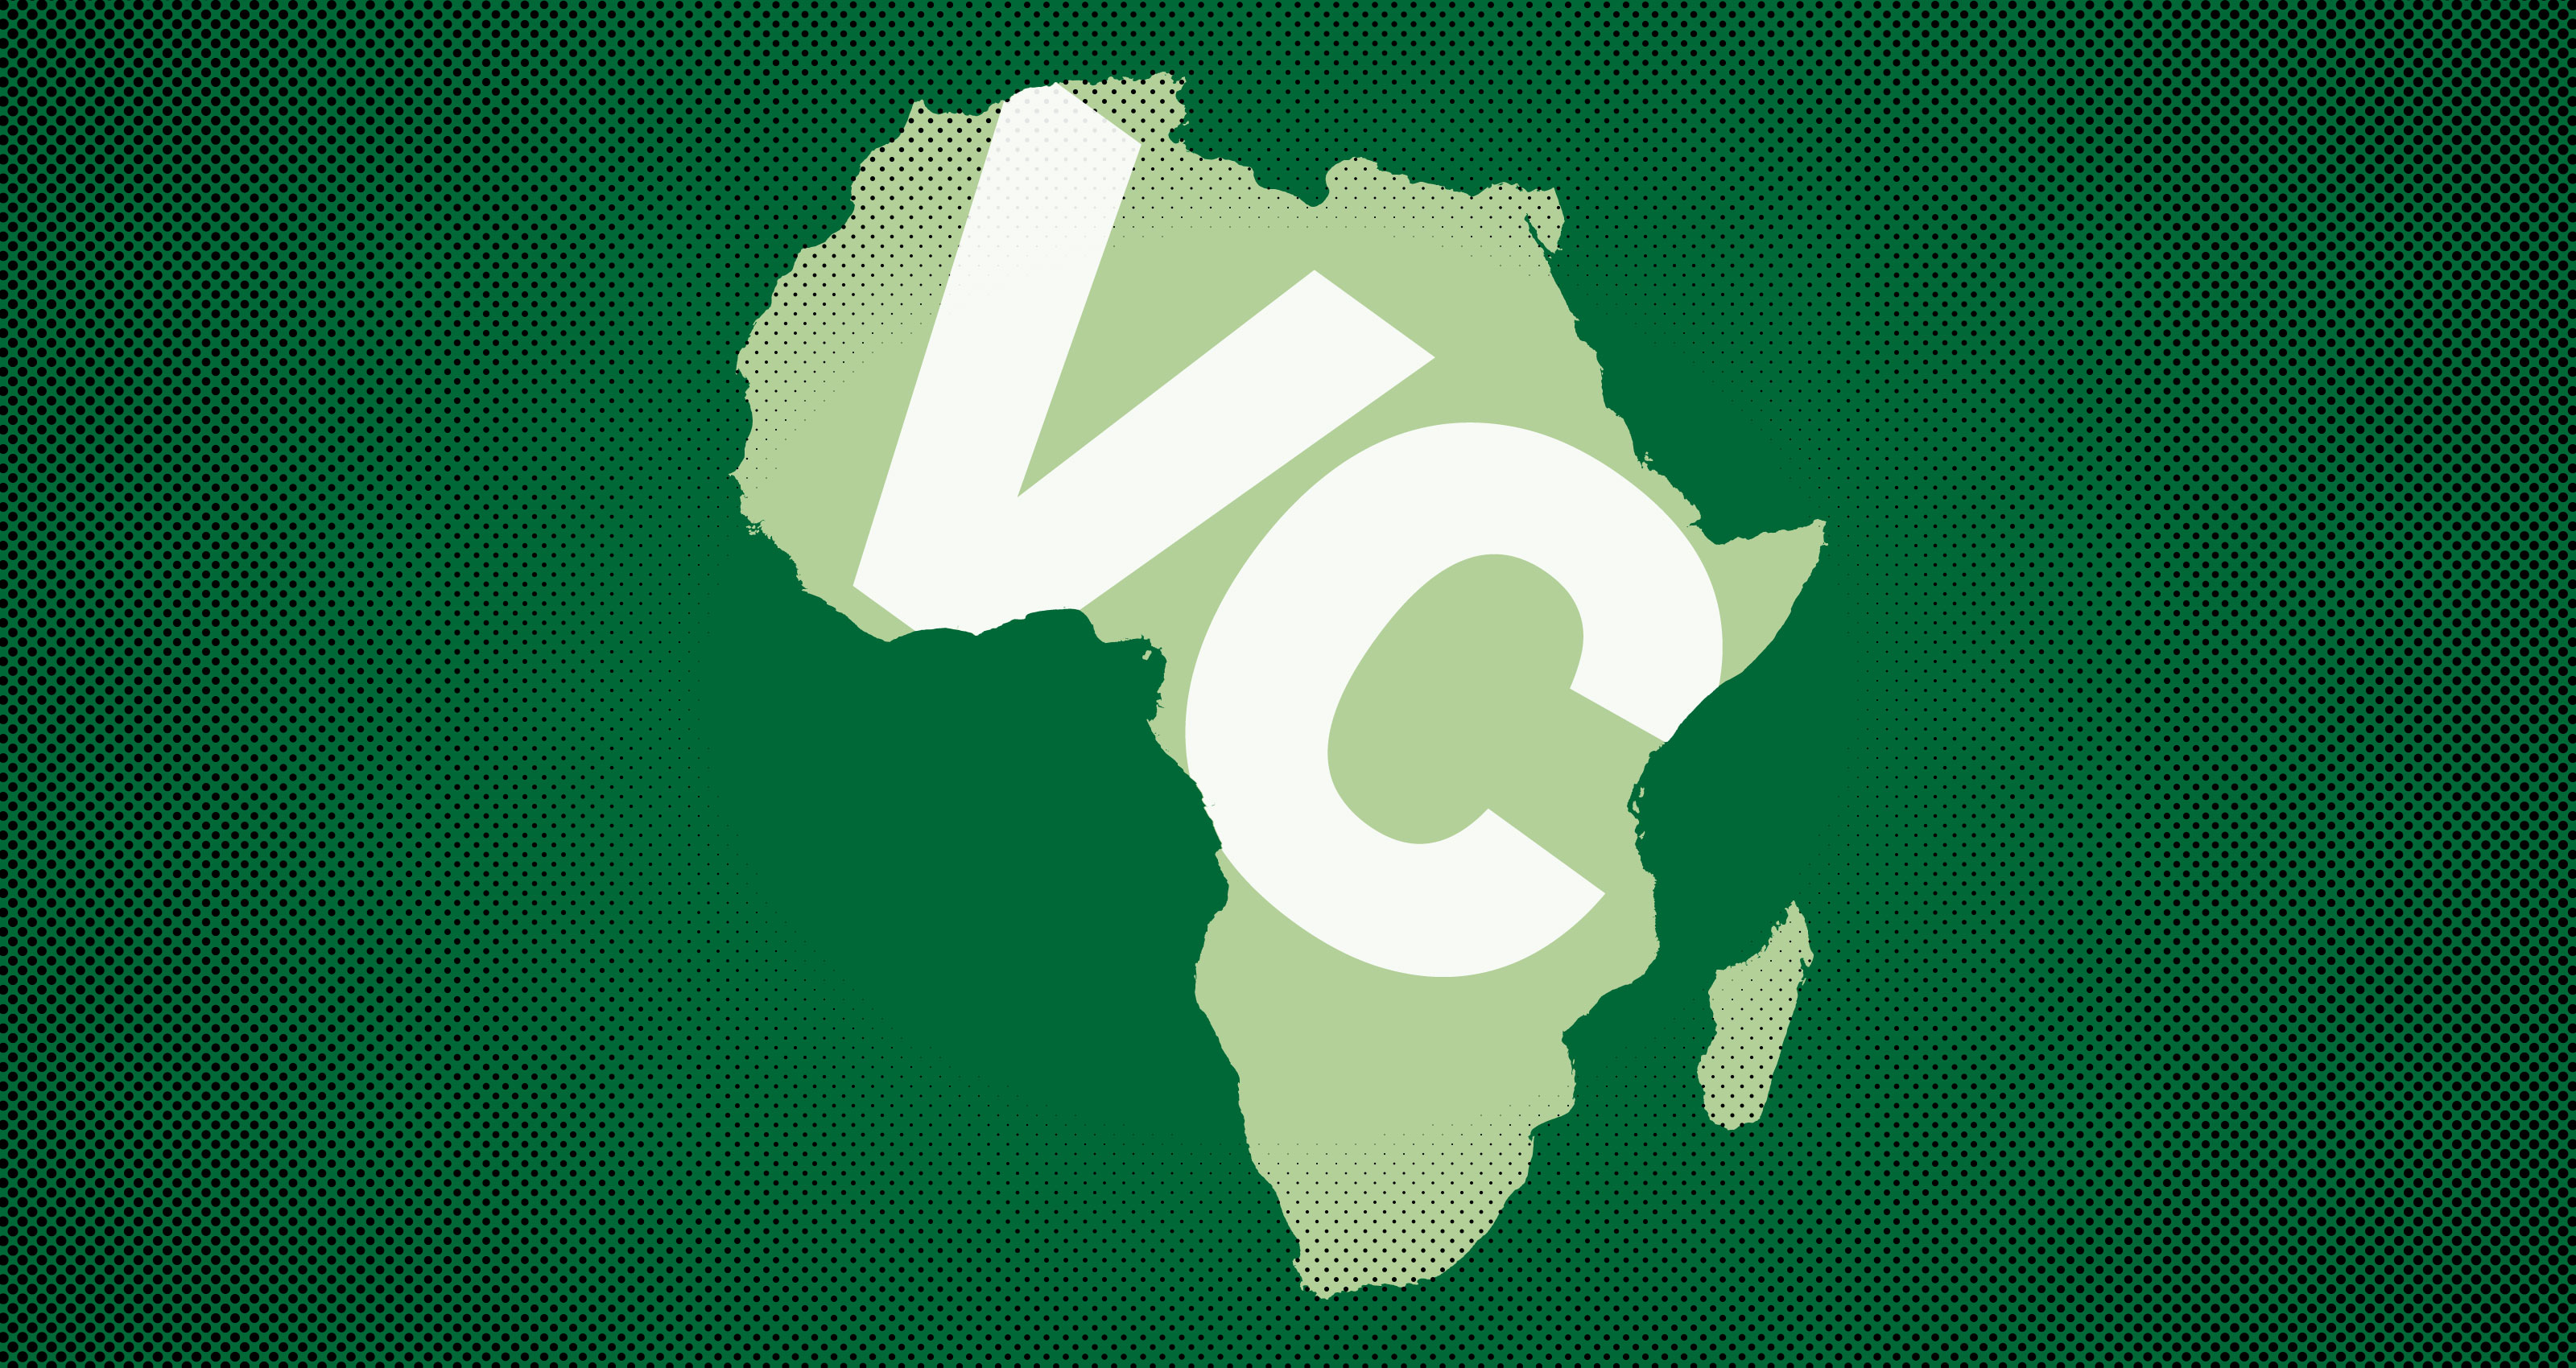 Africa Roundup: Local VC funds surge, Naspers ramps up and fintech